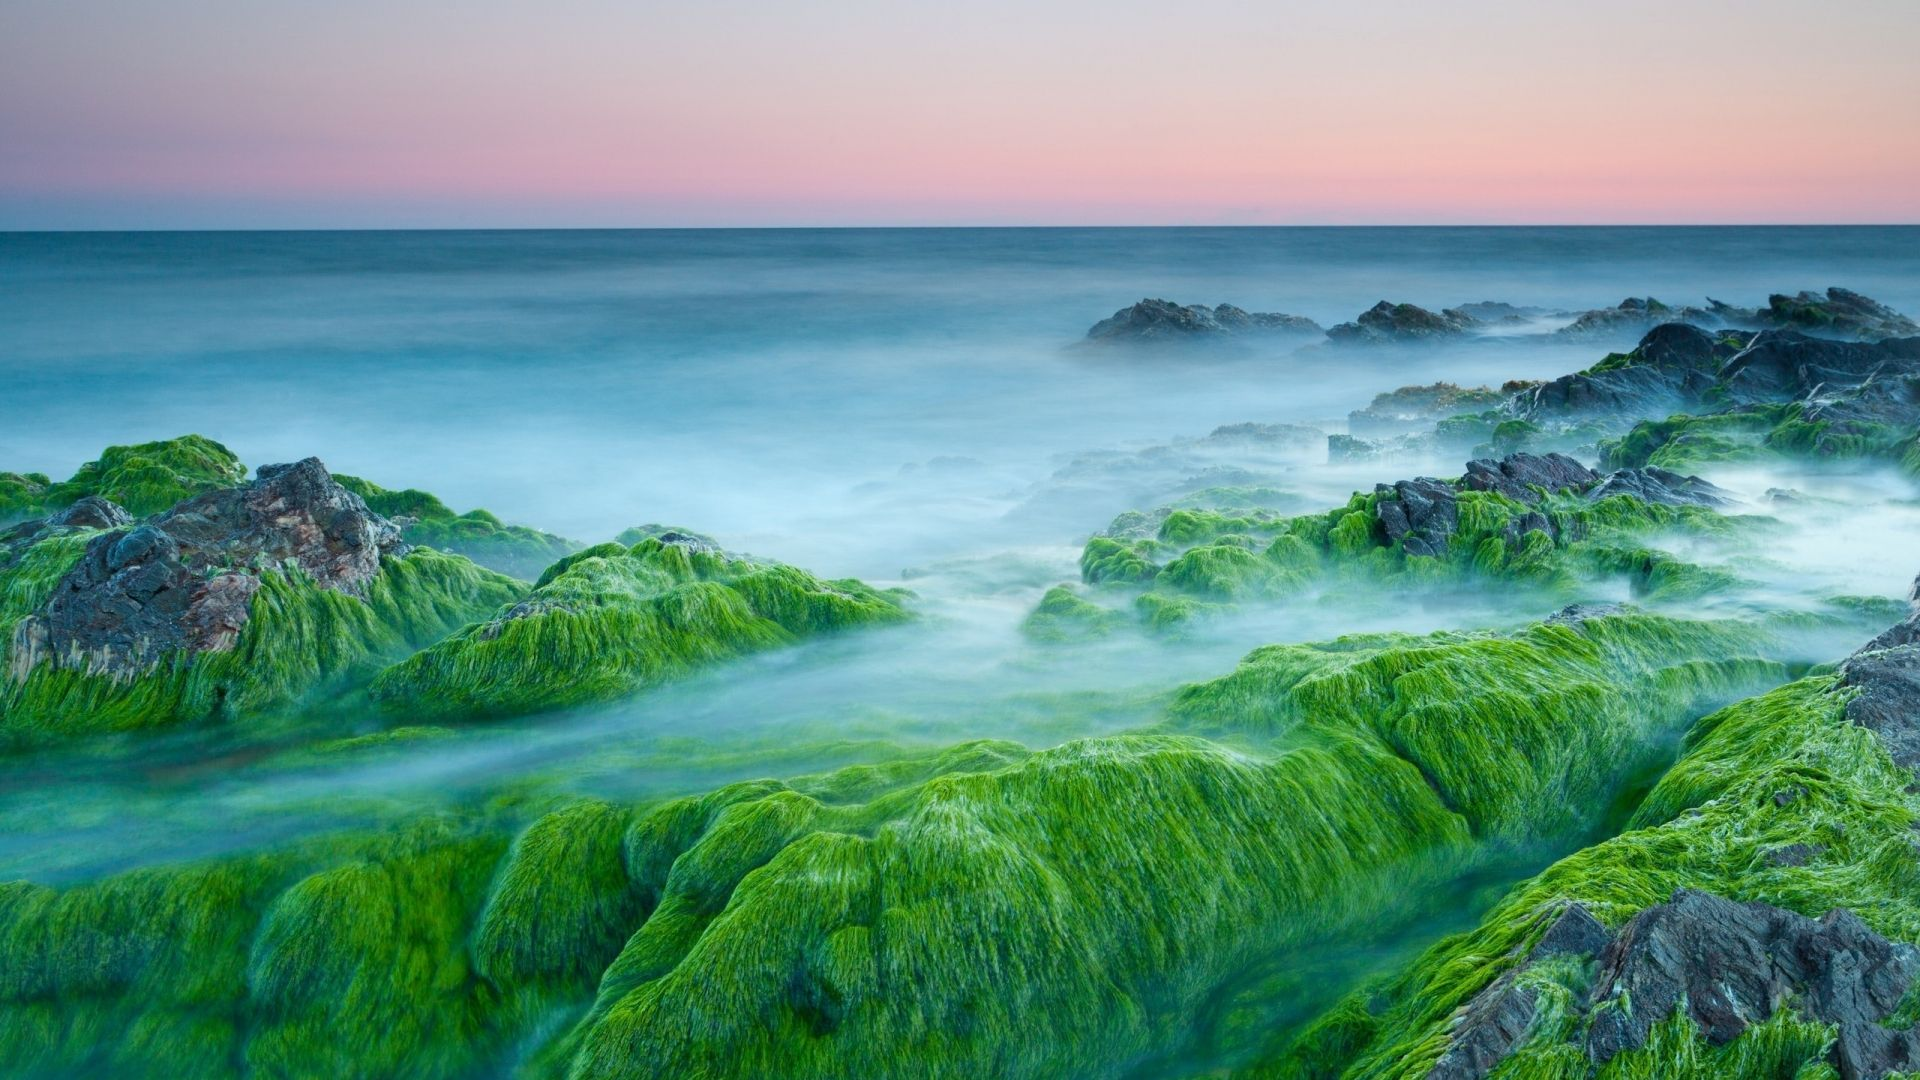 Green Algae On Rocks For 1920 X 1080 Hdtv 1080p Resolution New Nature Wallpaper Green Nature Wallpaper Night Scenery